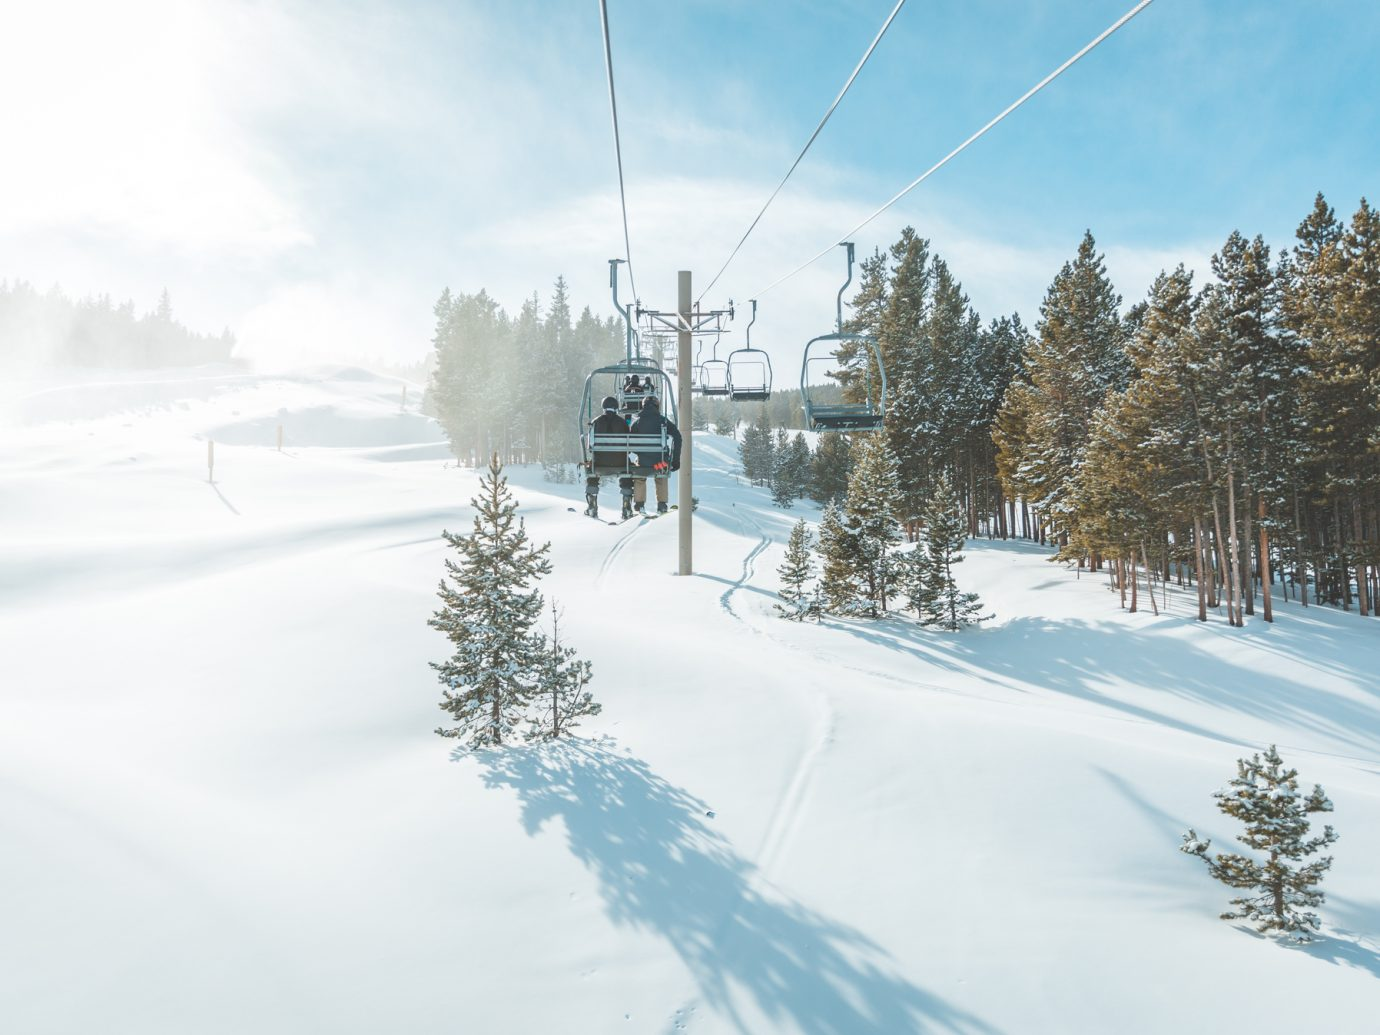 Breckenridge, United States - December 2, 2018: View of untracked ski slope and ski lift in Breckenridge ski resort.